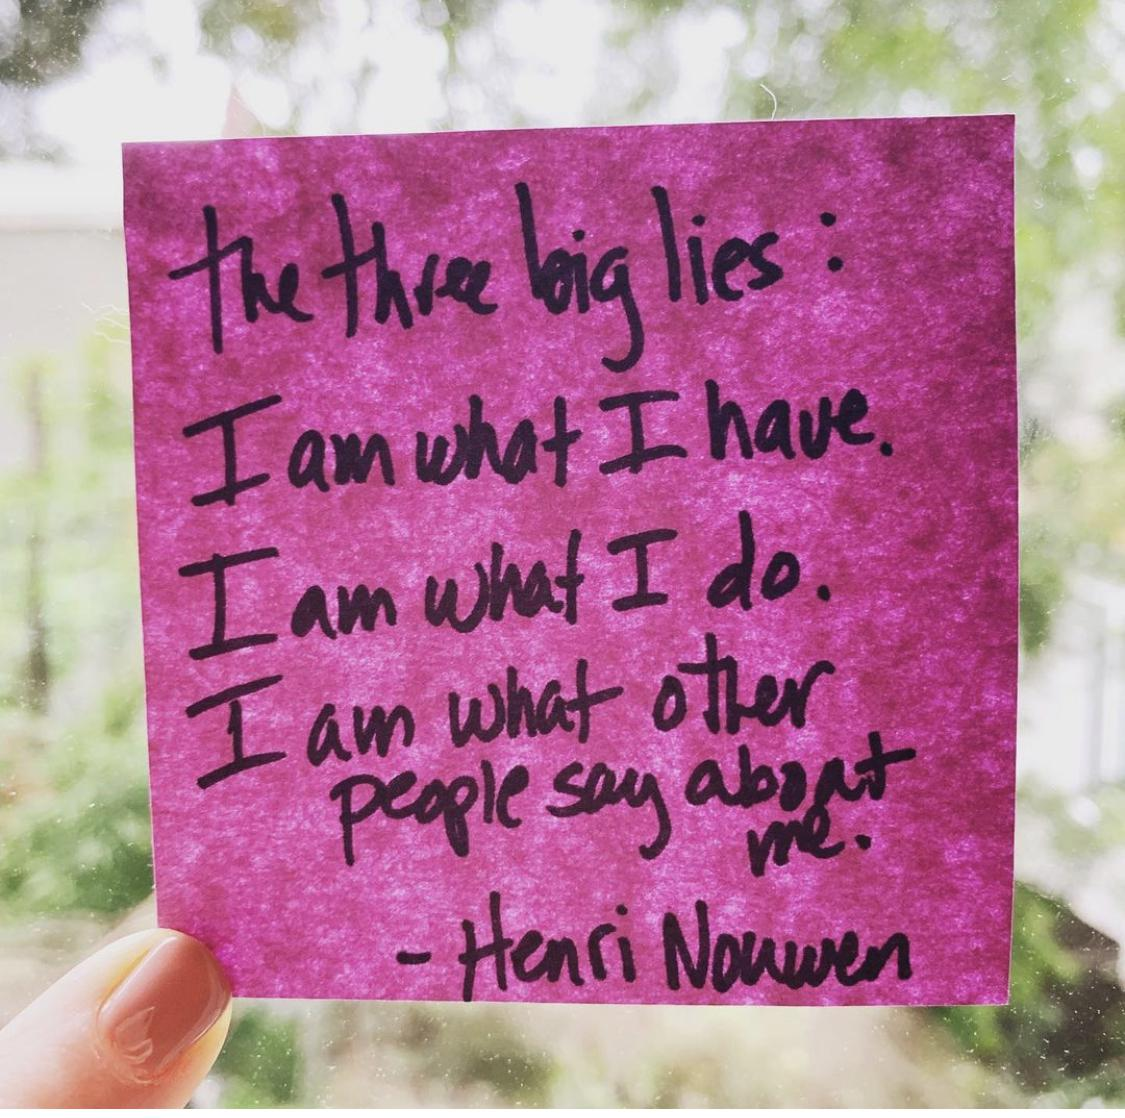 [Image] The 3 BIG lies